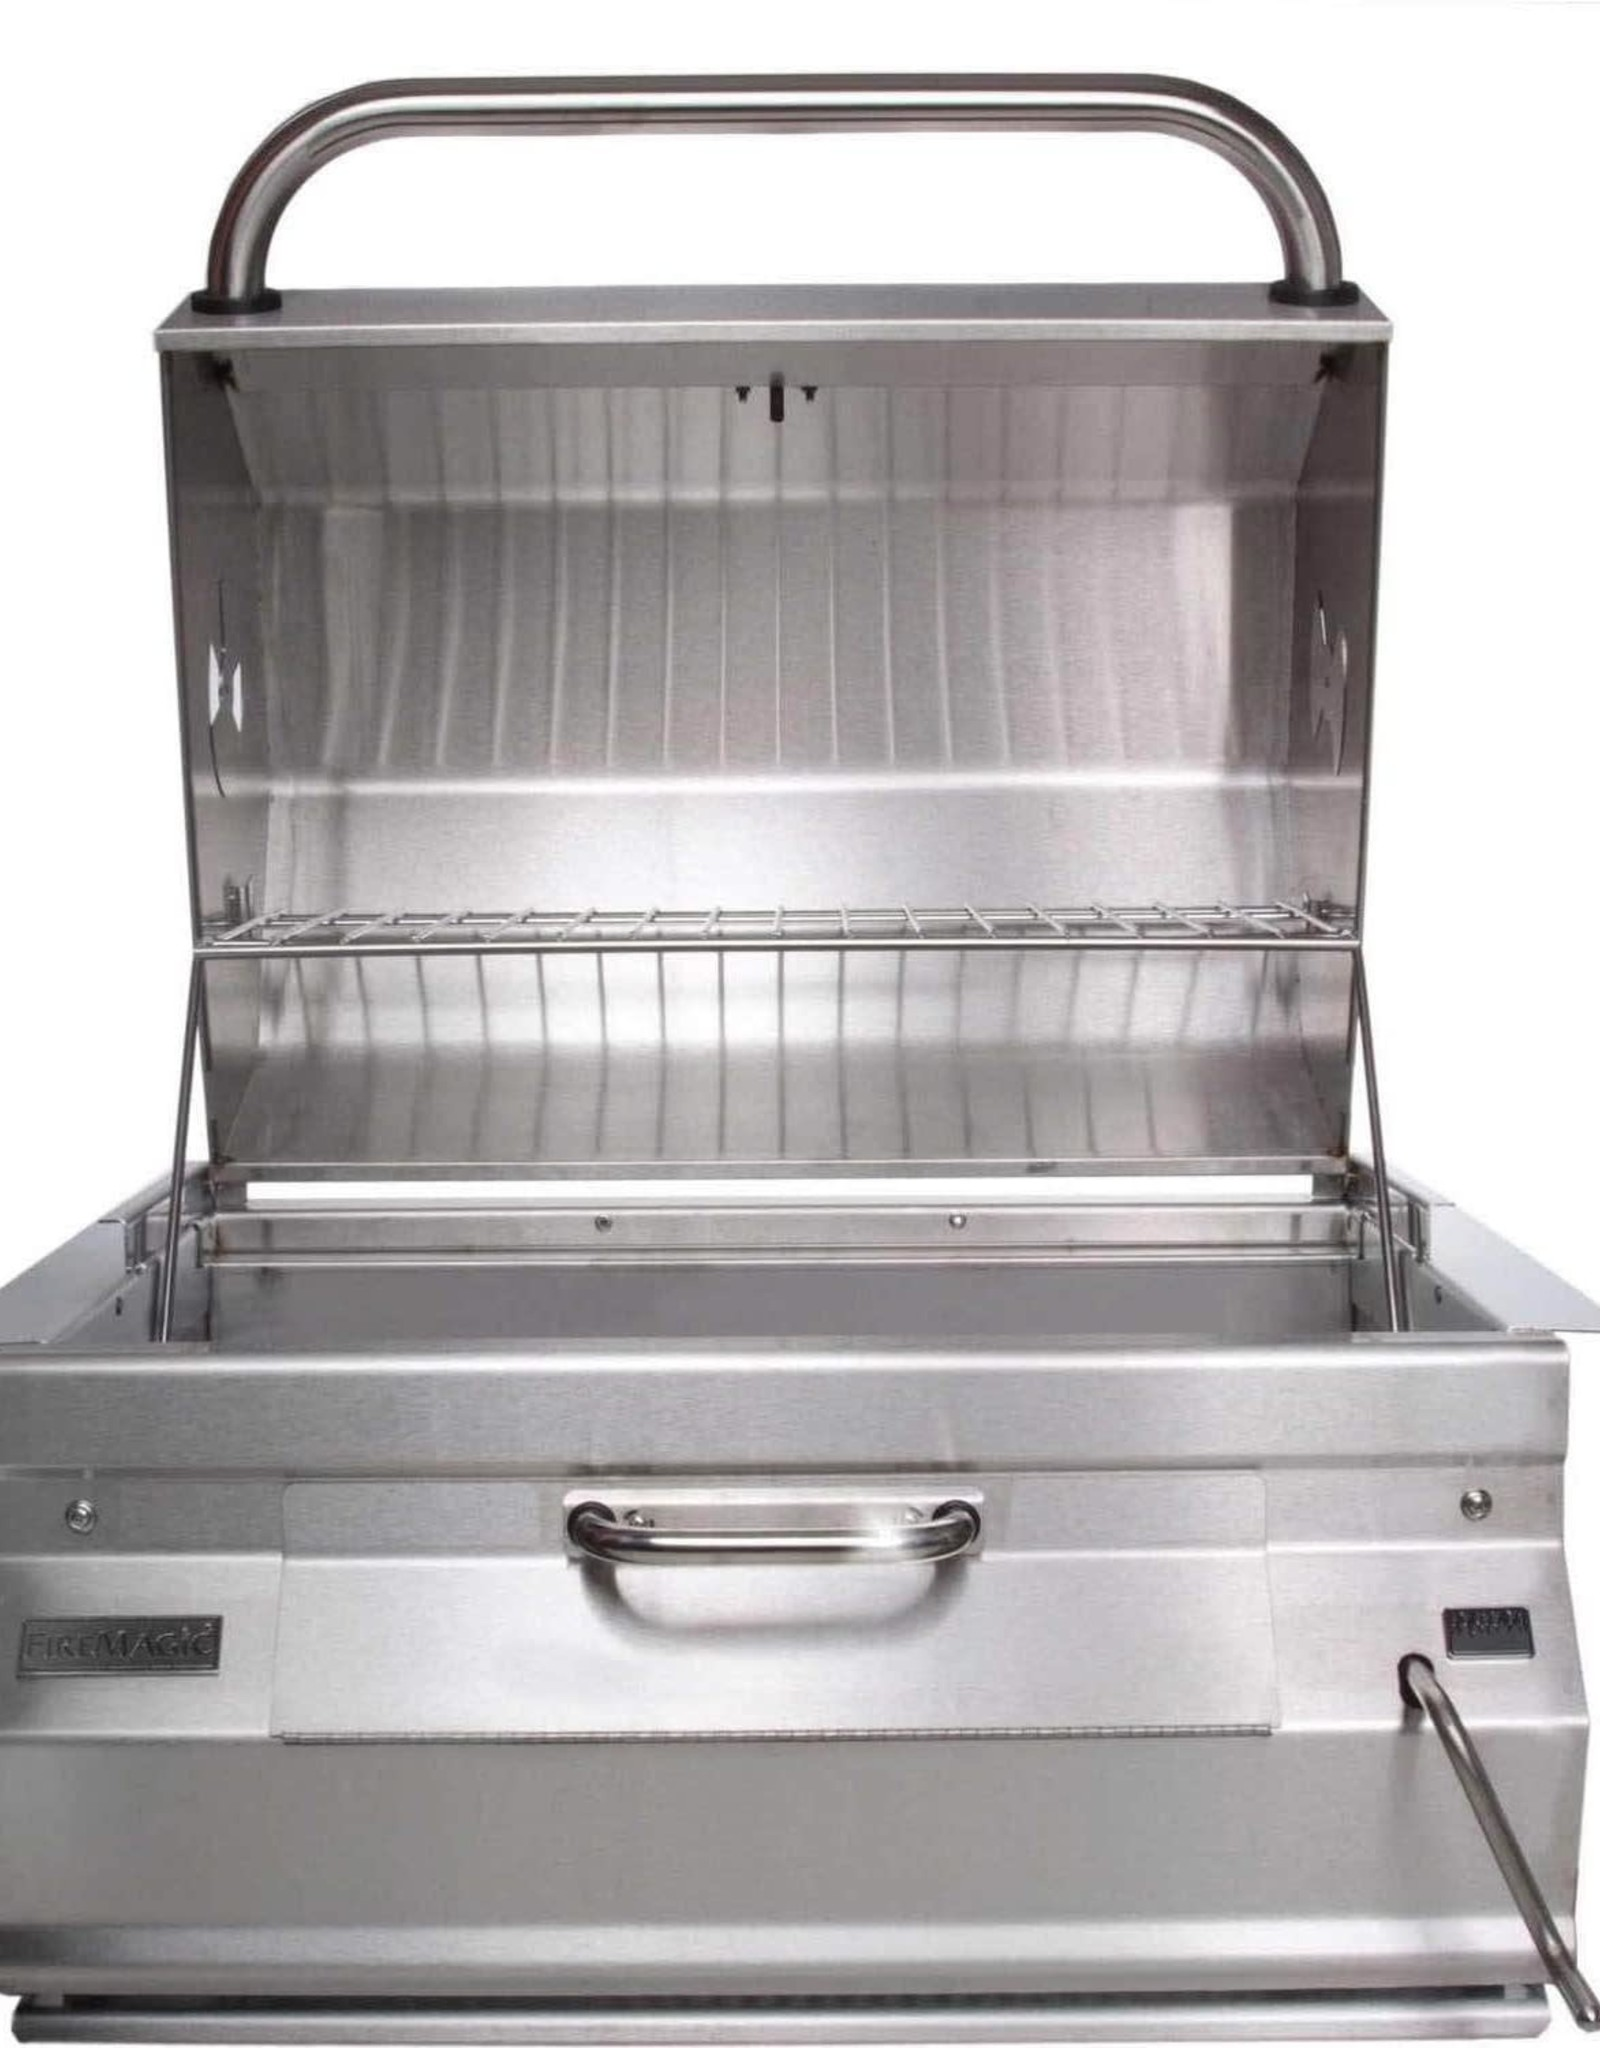 Fire Magic Fire Magic - Legacy Charcoal Slide In Barbecue Grill with Smoker Hood (30 x 18)